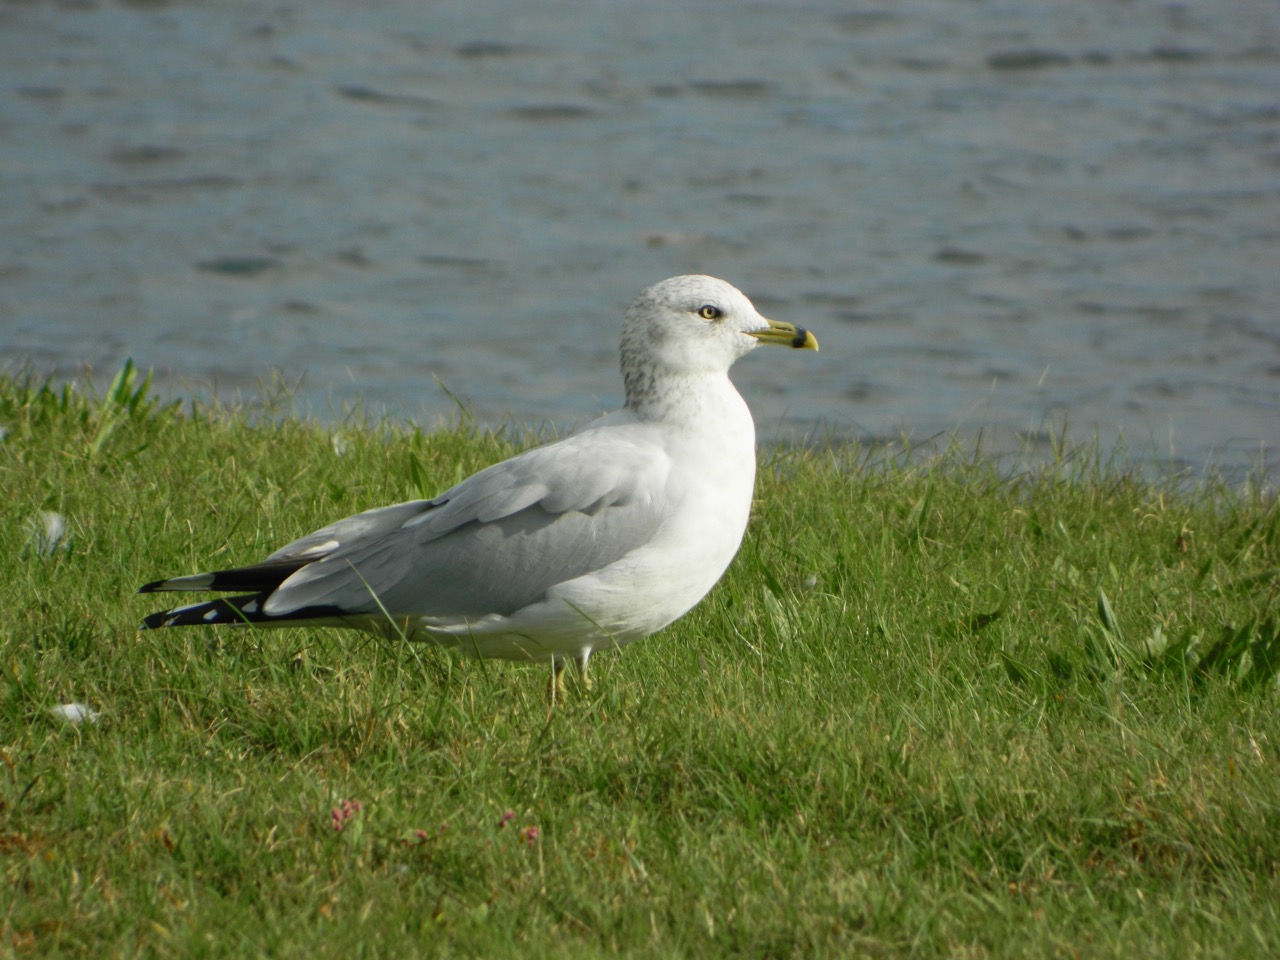 Ring-billed Gull photo by Toribird